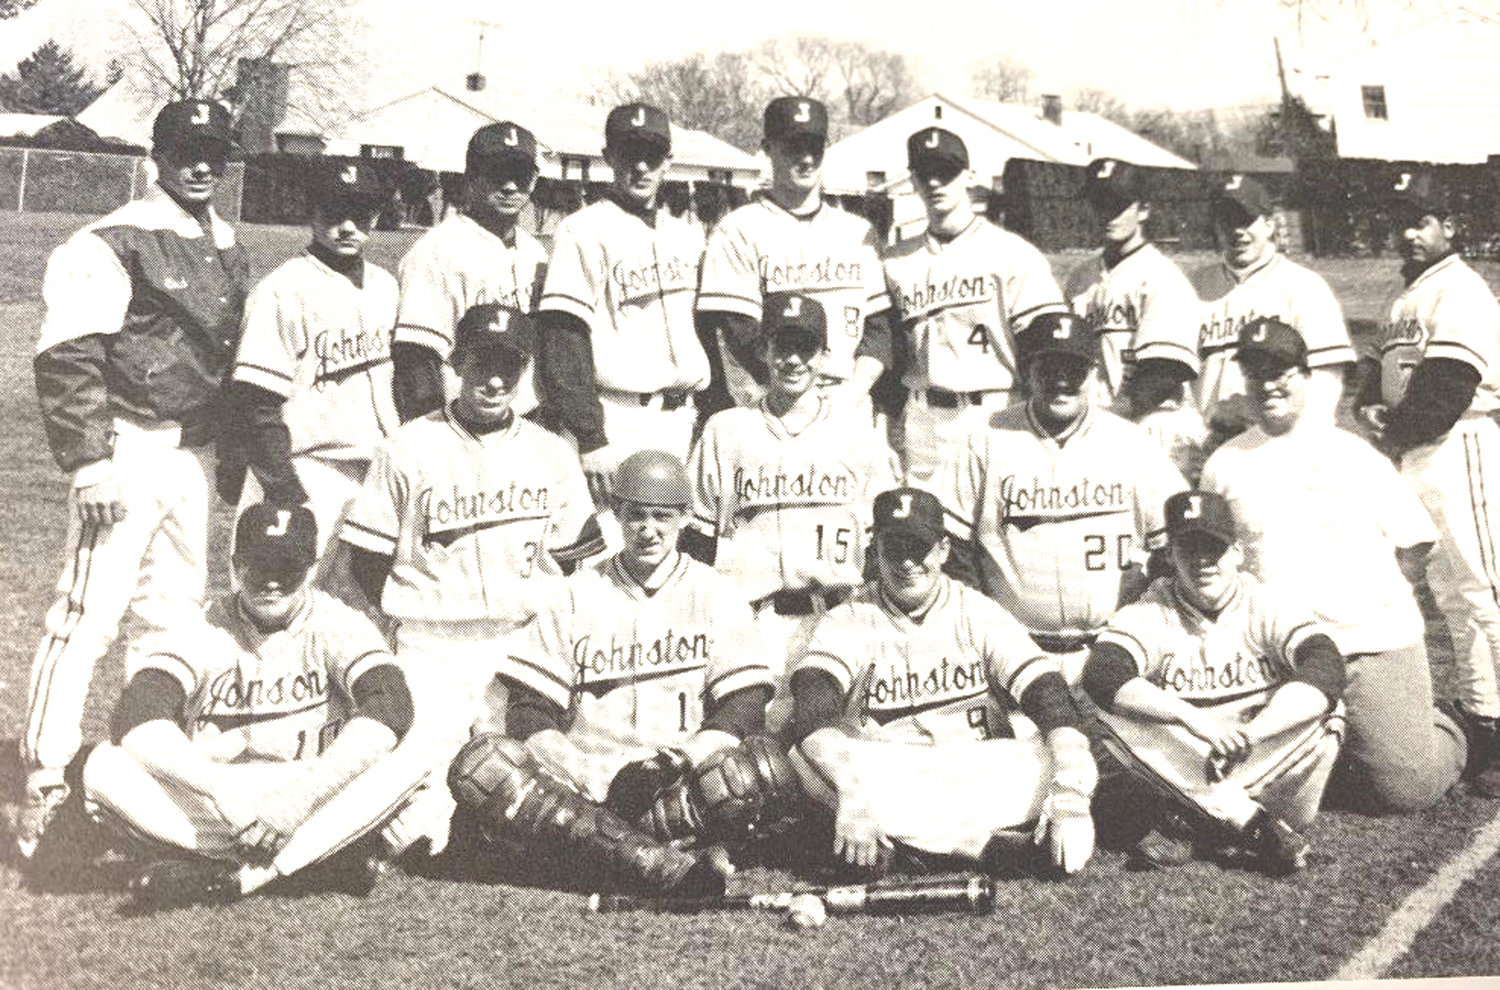 CHAMPIONSHIP CAST: This is the 1995 Johnston High School baseball team that captured the Rhode Island Interscholastic League Class B State Championship. All team members will be inducted into the Athletic Hall of Fame on Oct. 27.